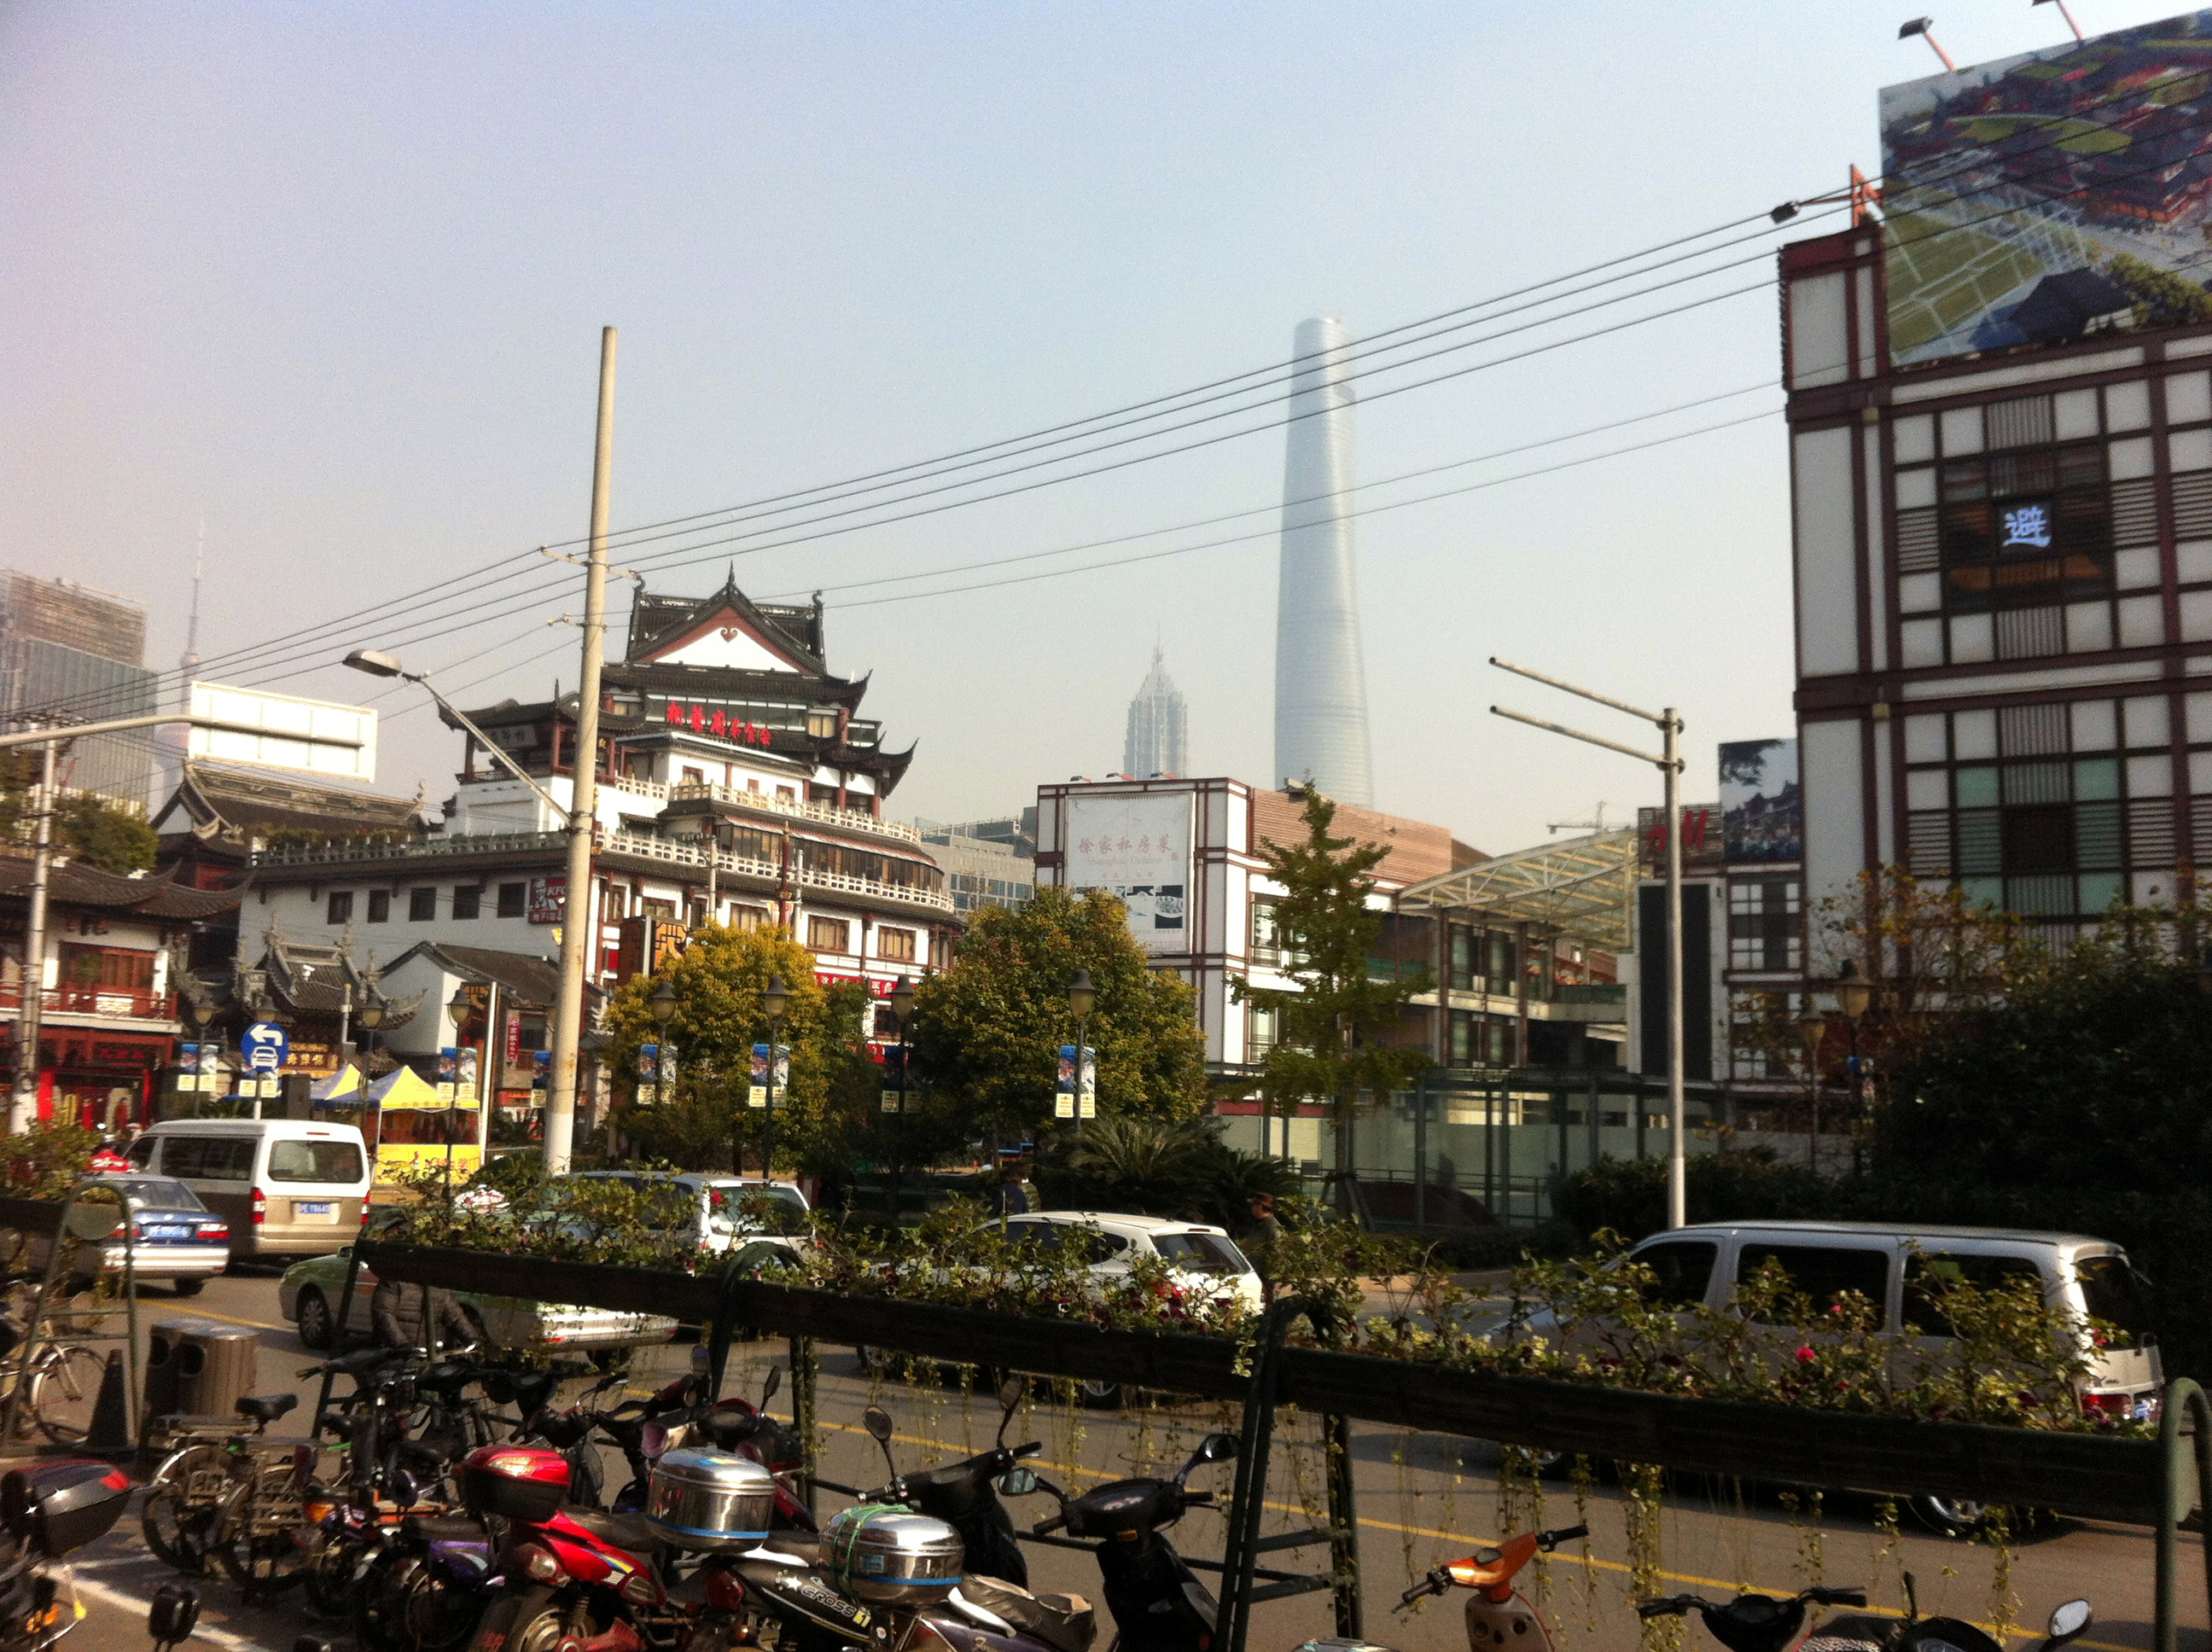 Modern scooters, older buildings, and modern towers all make up Shanghai's current incarnation.